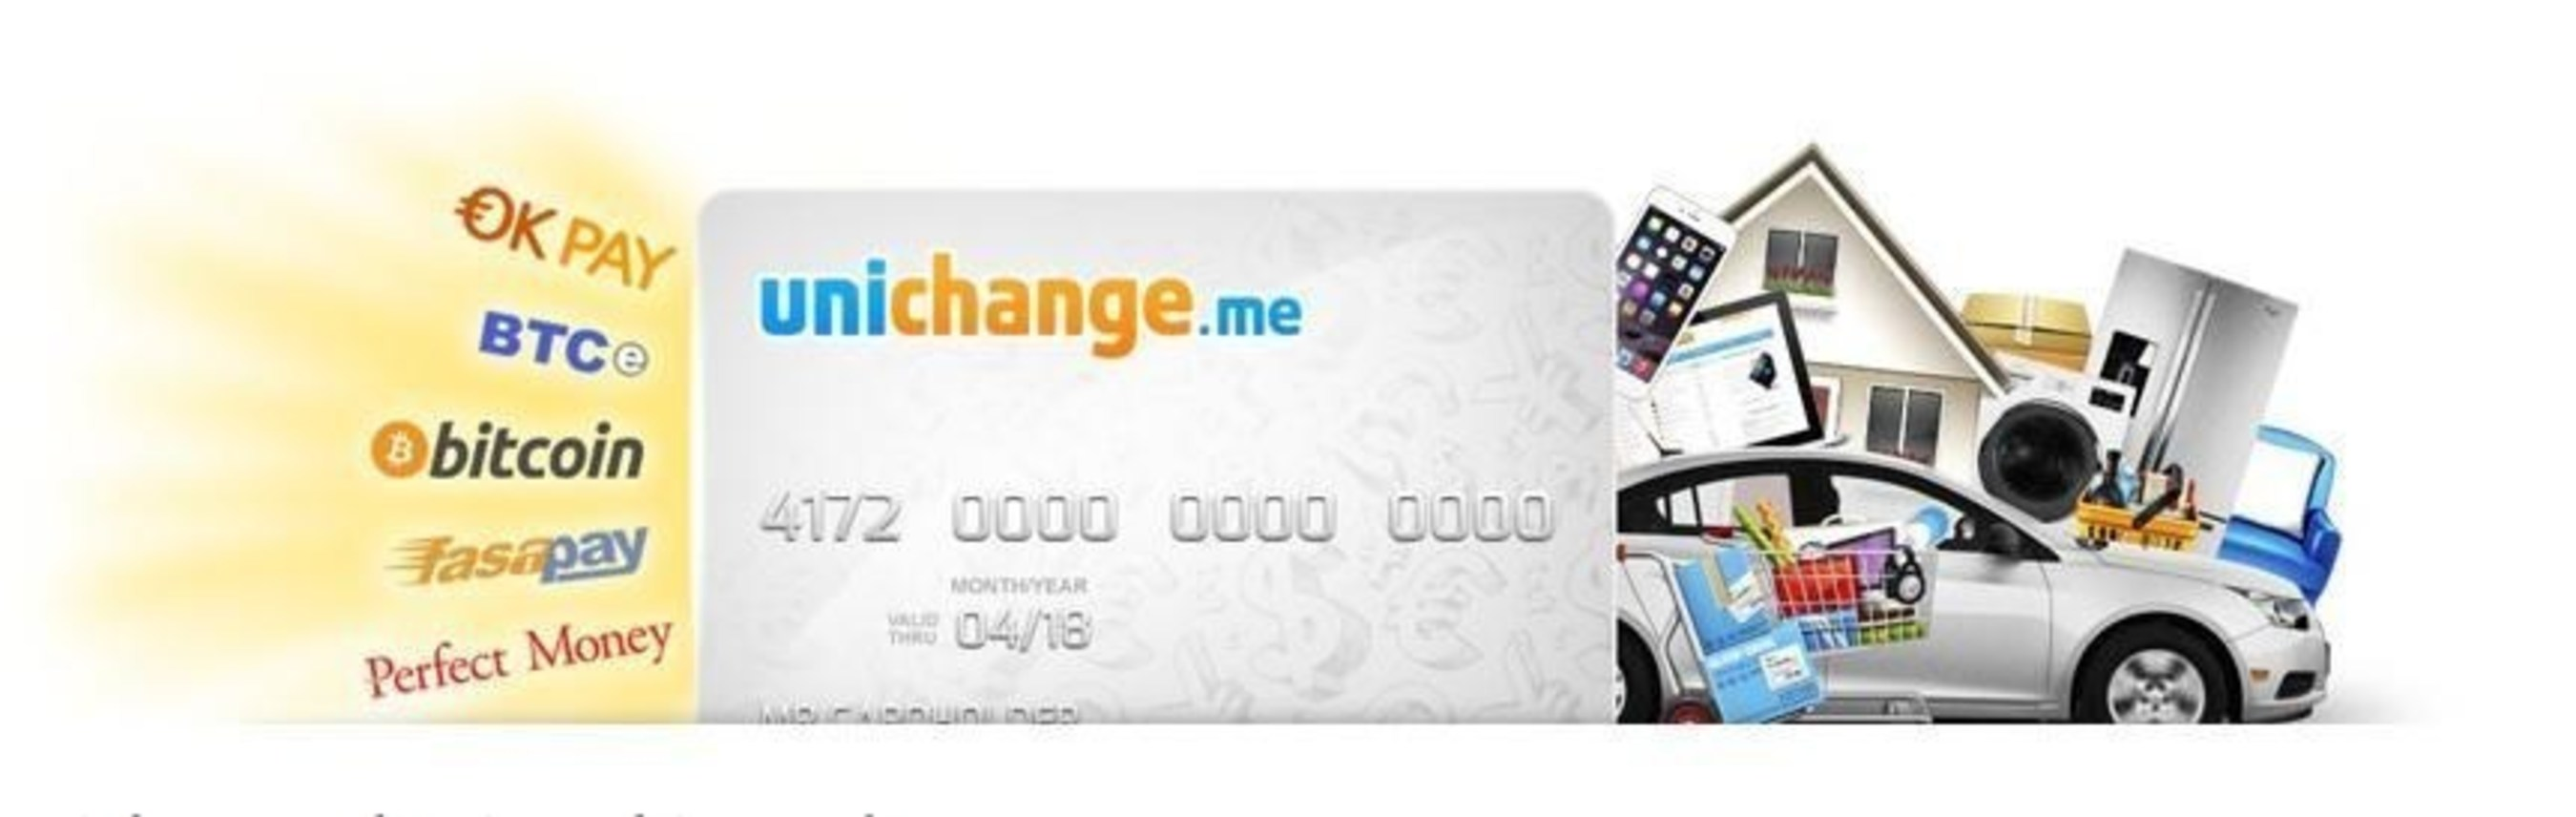 Use bitcoin at amazon aliexpress and more with a free unichange conditions of the promotion are very transparent customers who order a unichange plastic card will receive unichange virtual card of the same currency reheart Gallery